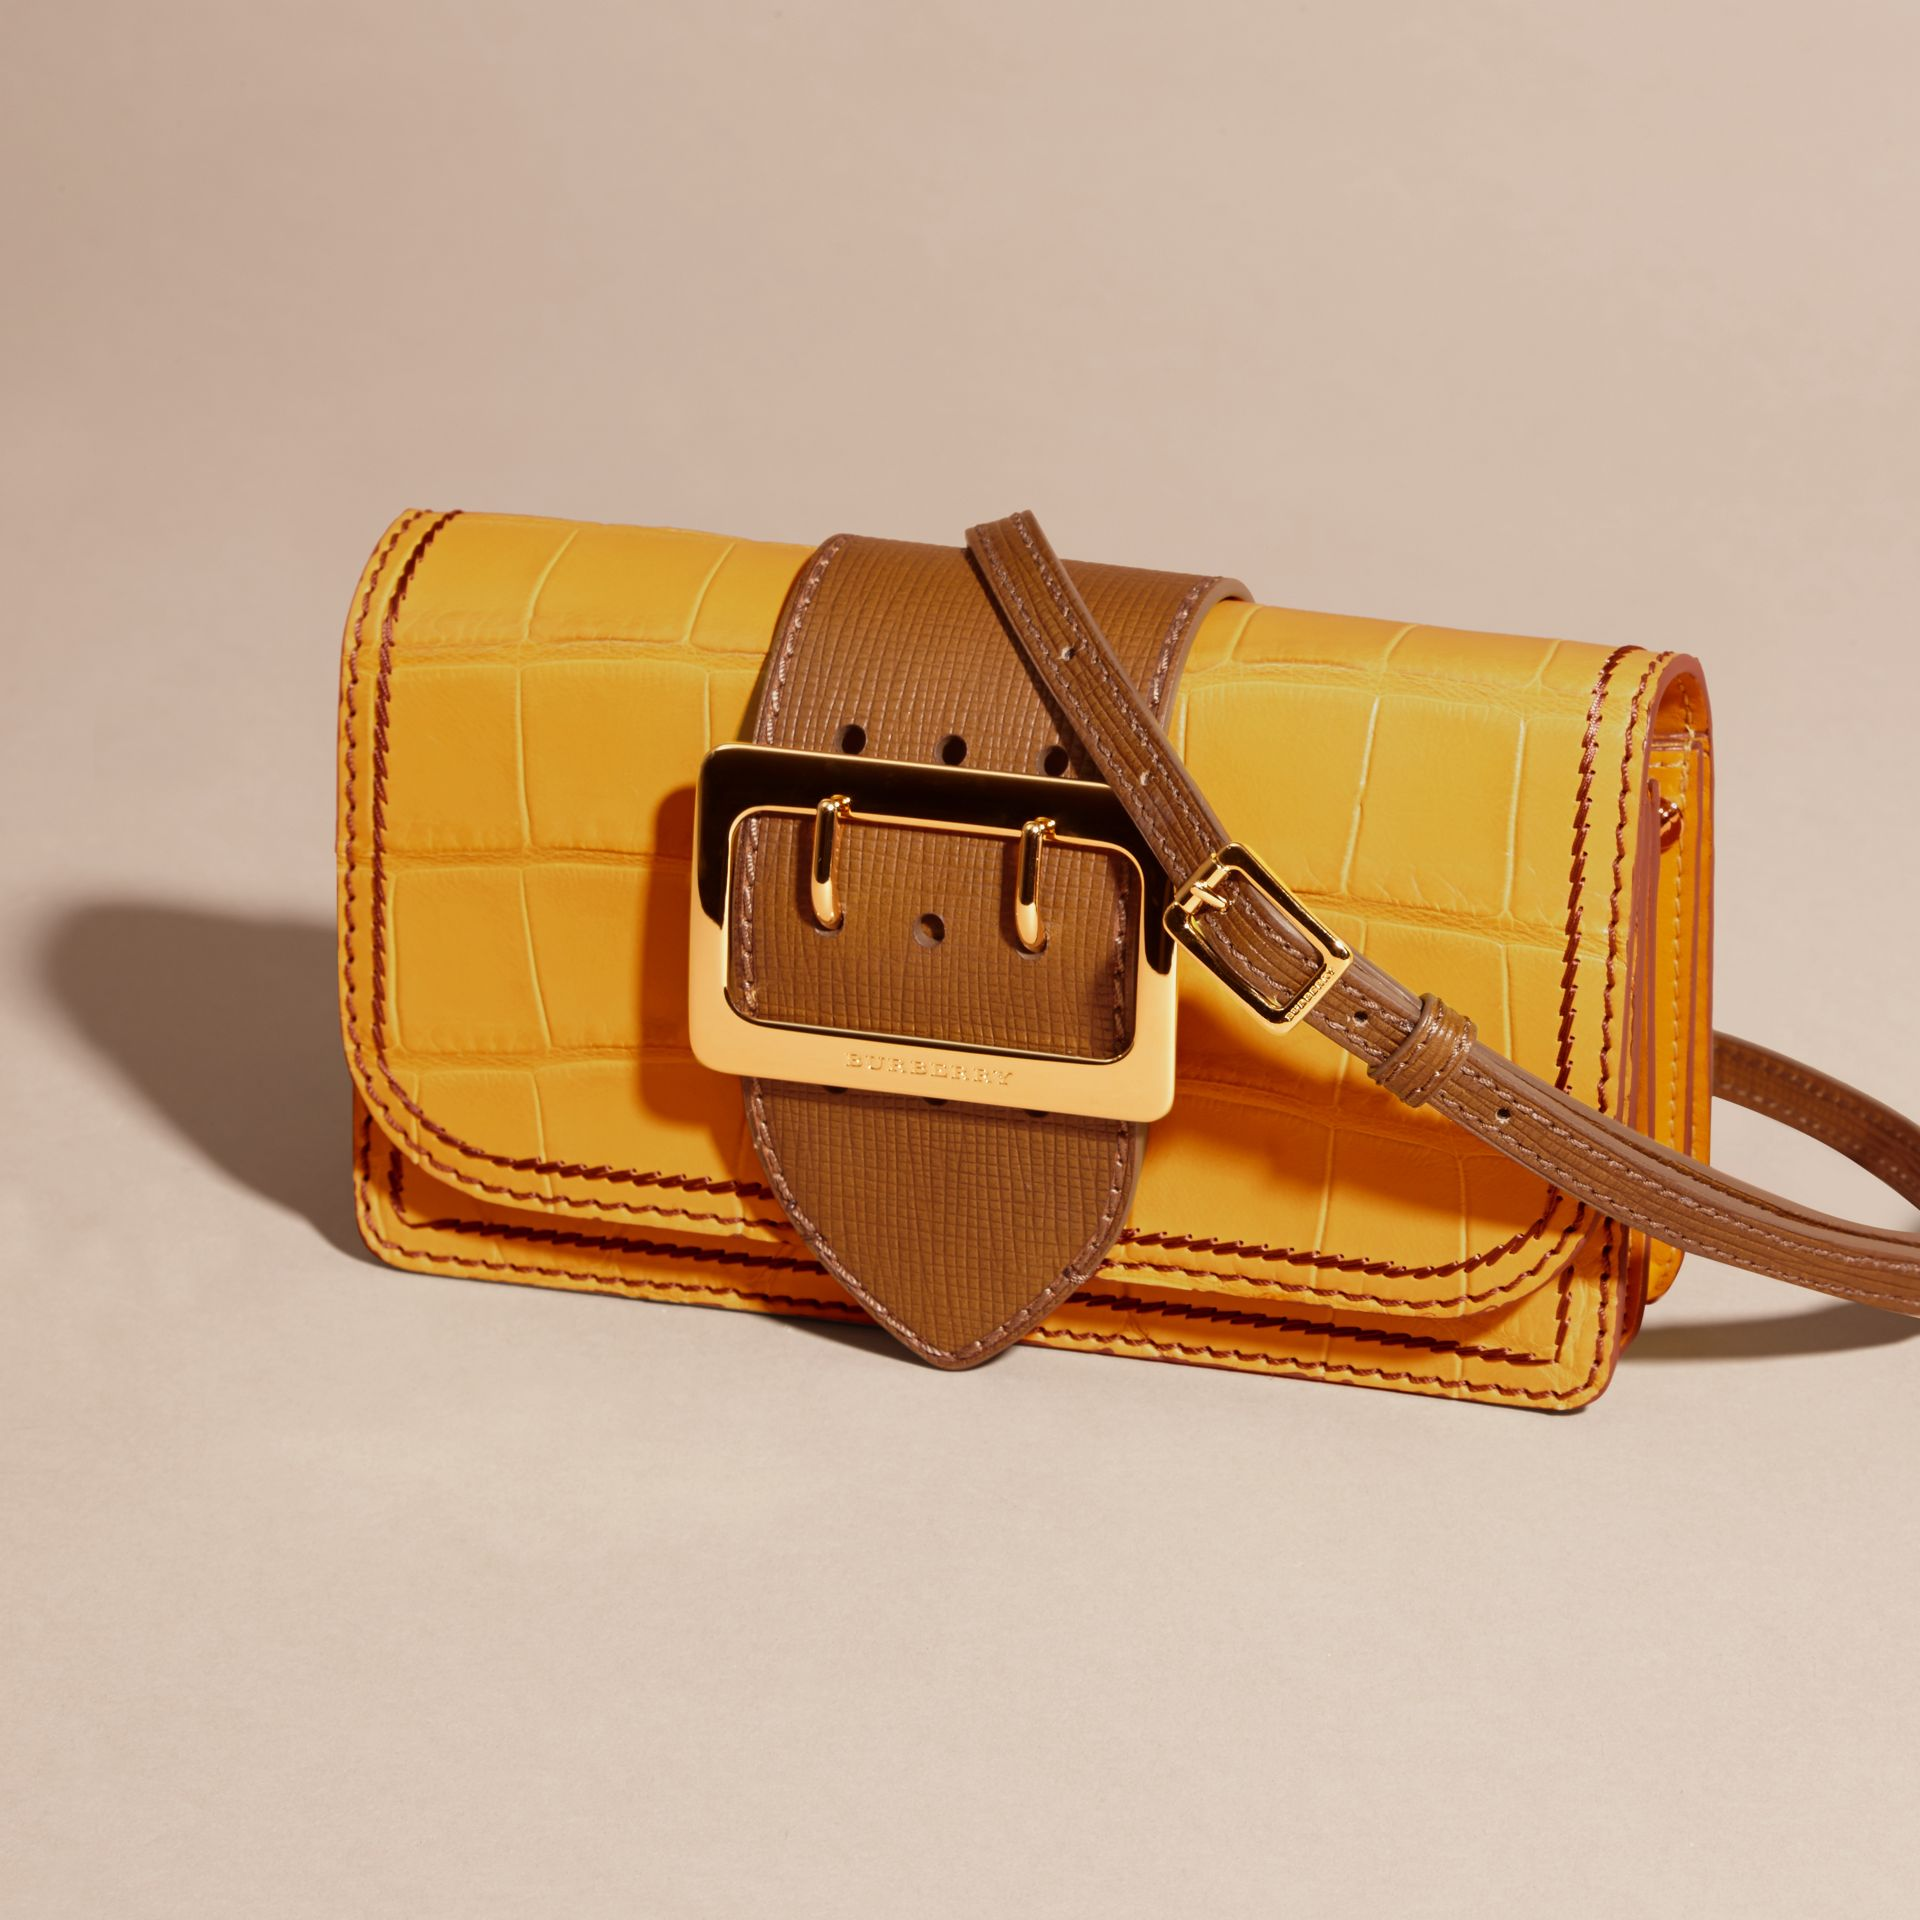 The Small Buckle Bag in Alligator and Leather in Citrus Yellow / Tan - Women | Burberry - gallery image 8